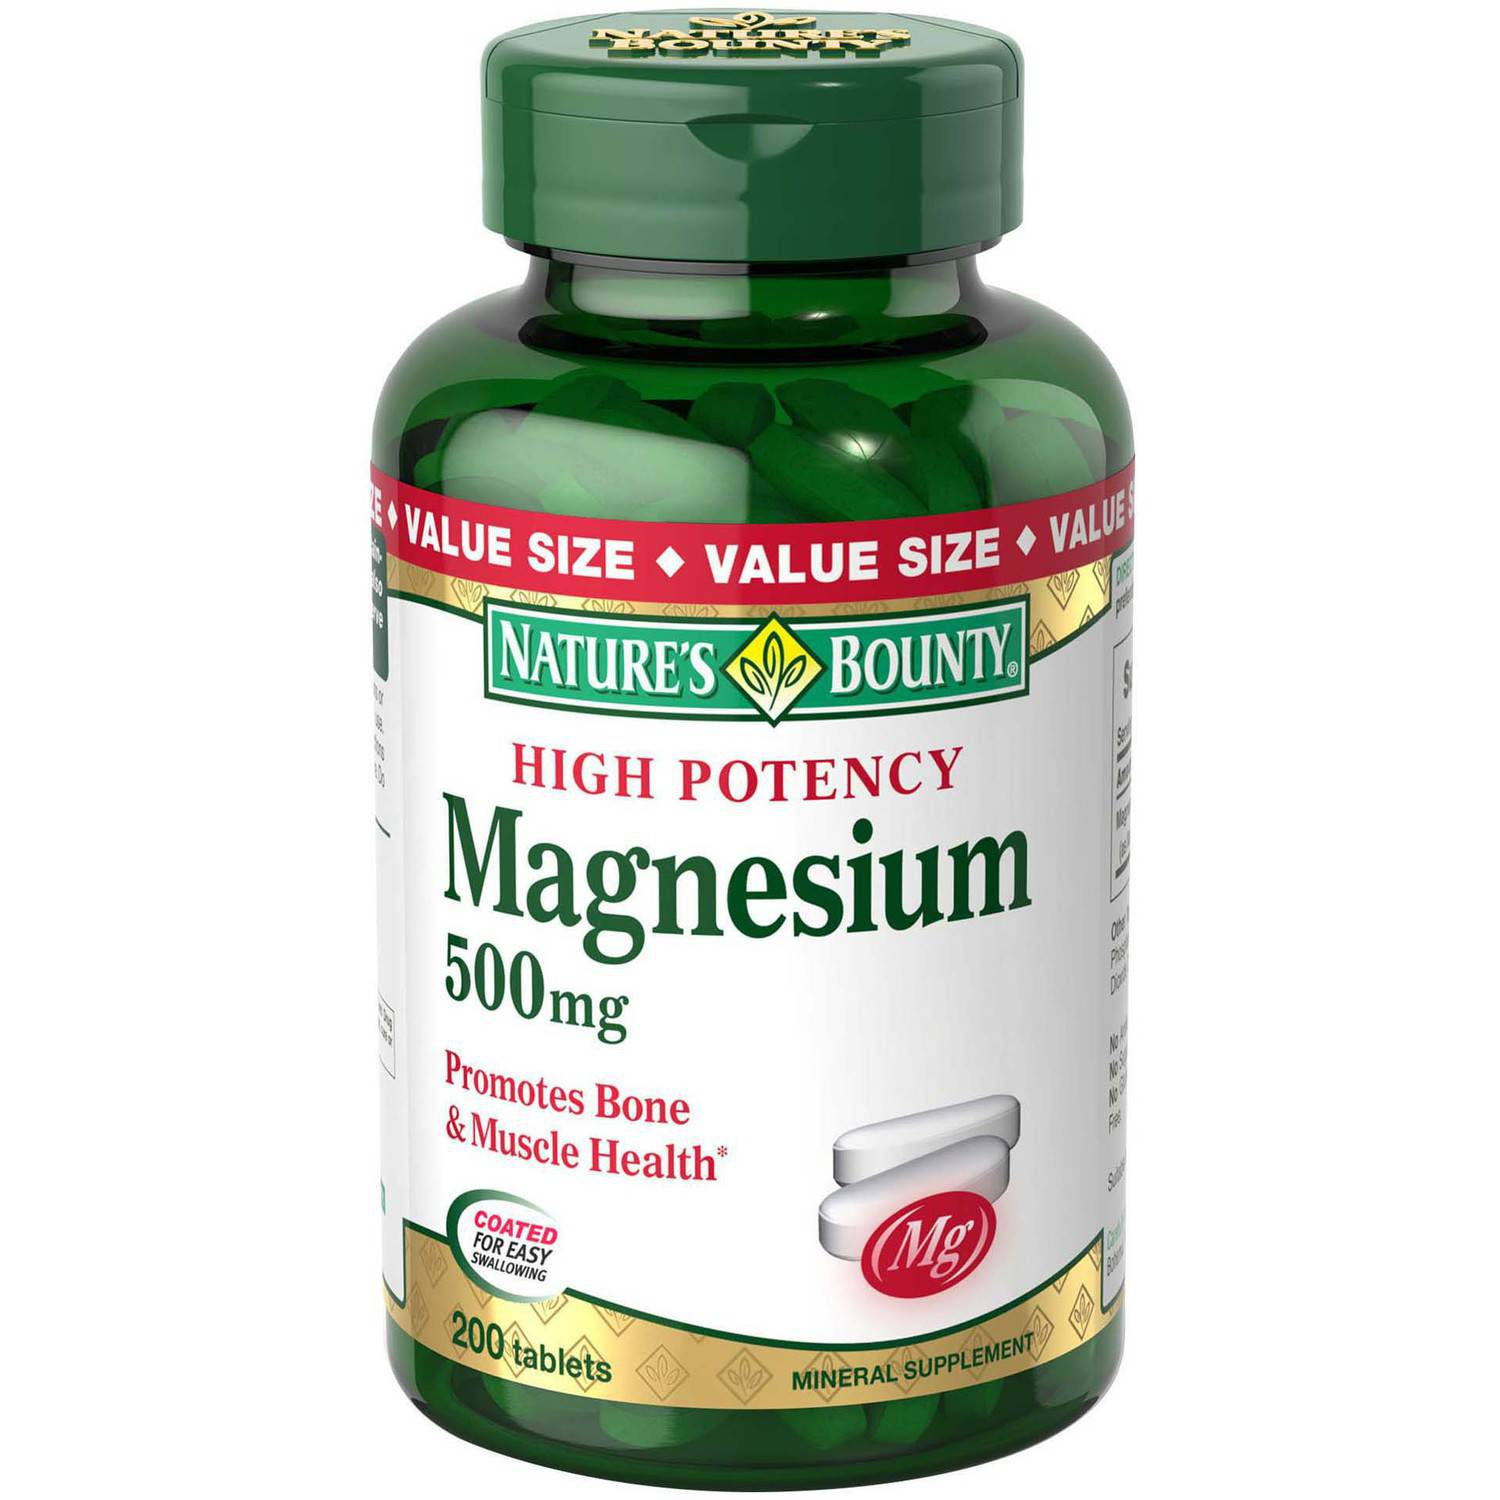 Nature's Bounty Magnesium Mineral Supplement Tablets, 500mg, 200 count